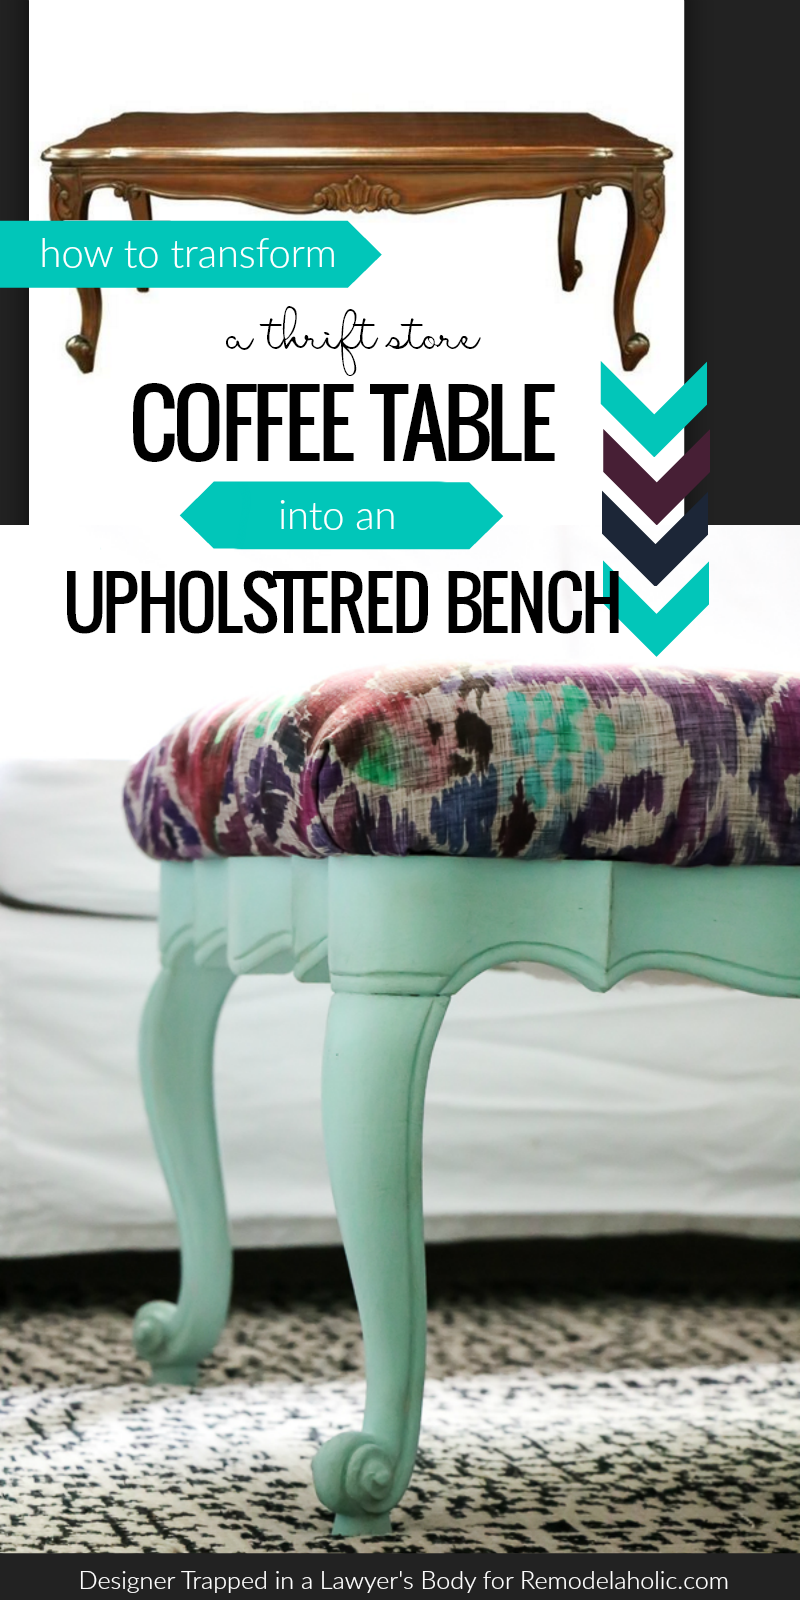 This Upcycled Coffee Table Turned Upholstered Bench Will Change The Way You Look At Thrift